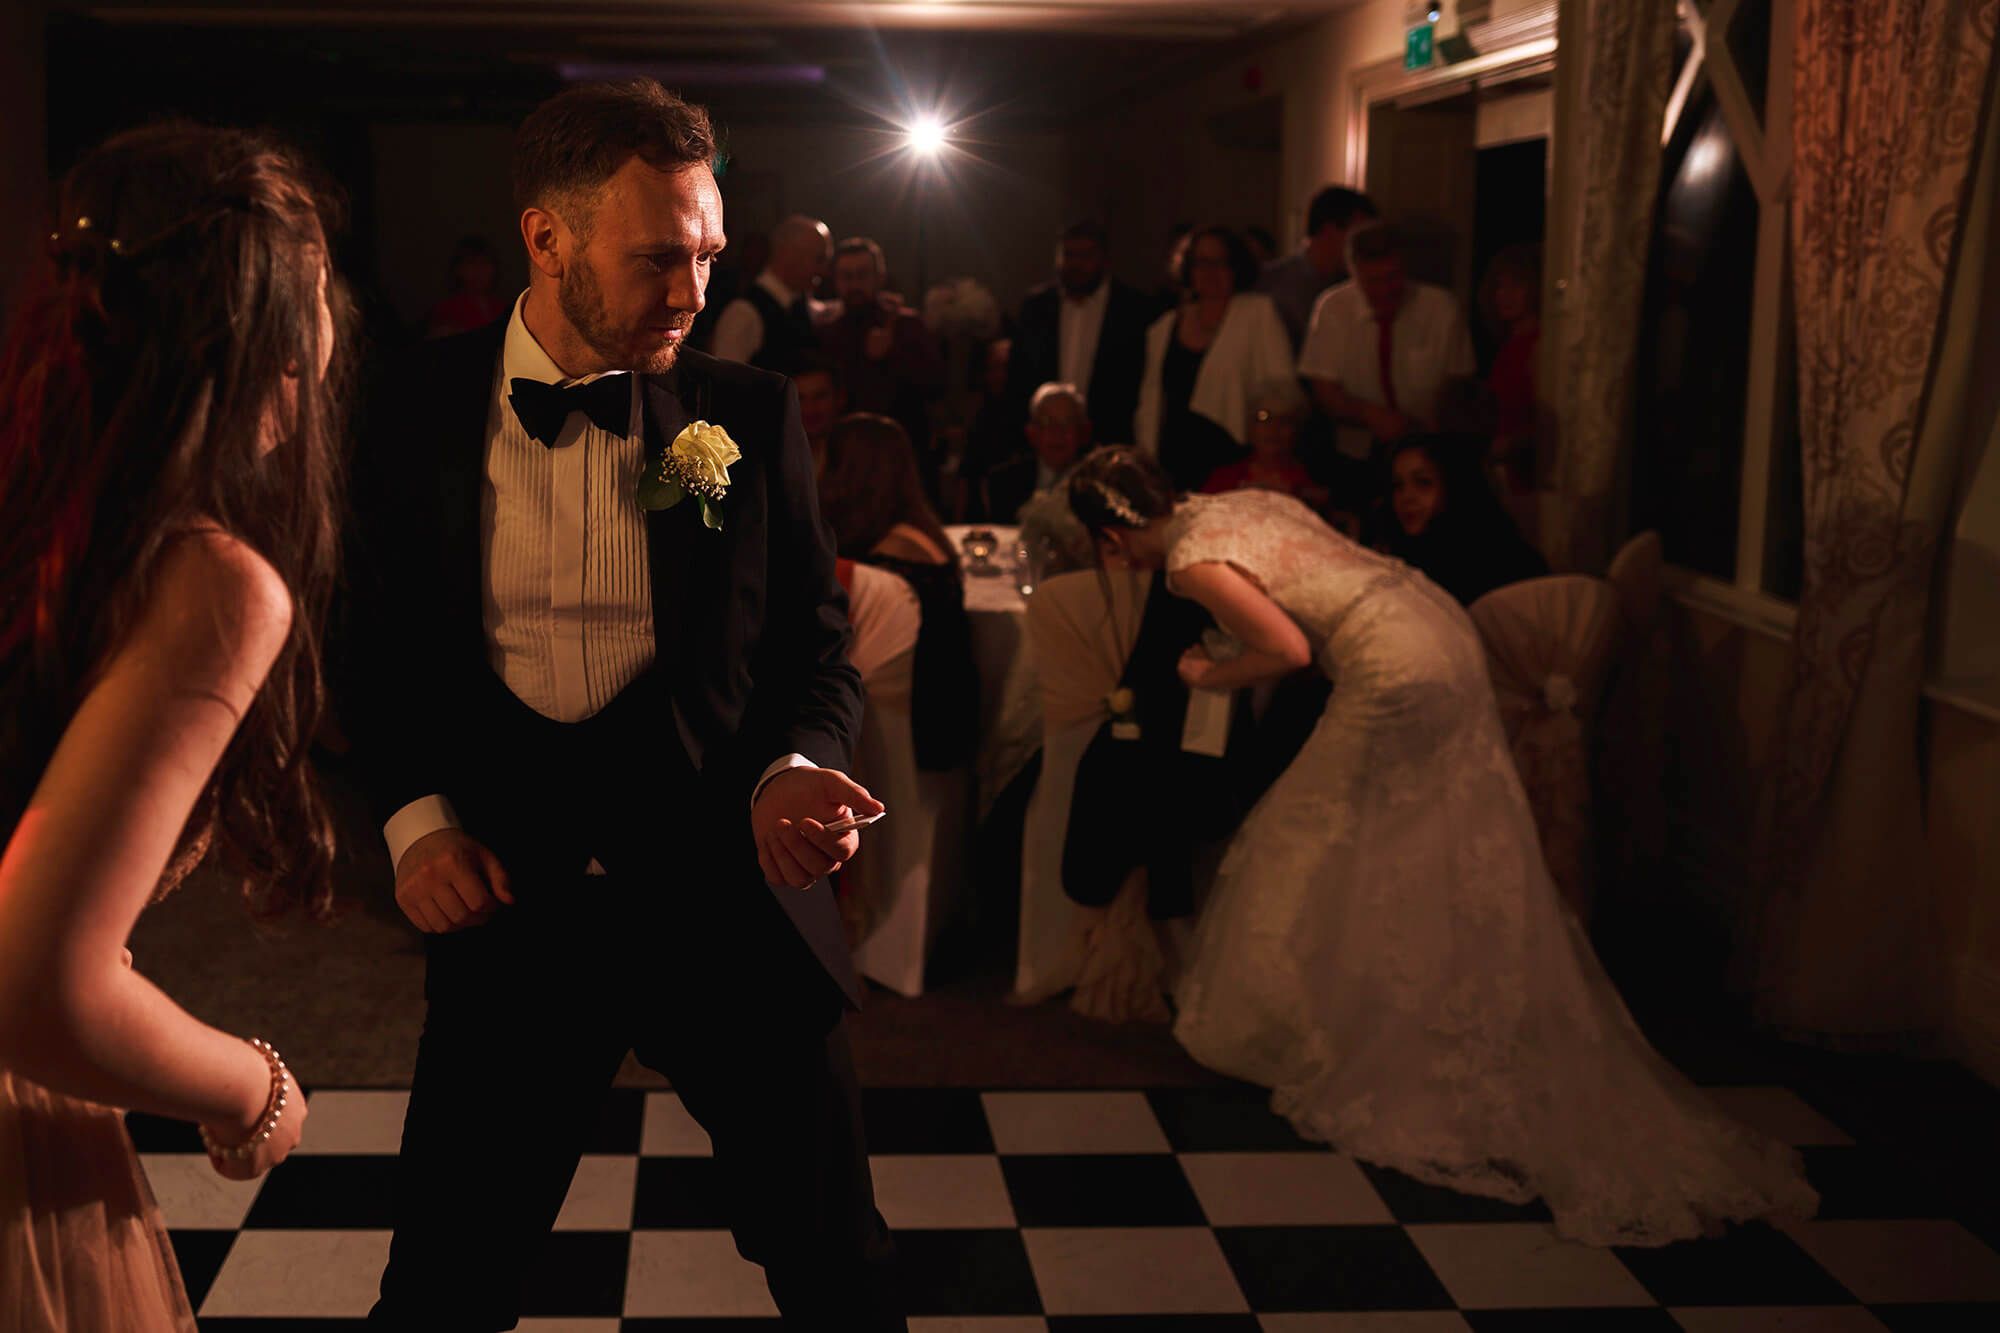 awesome dance moves at crabwall manor wedding